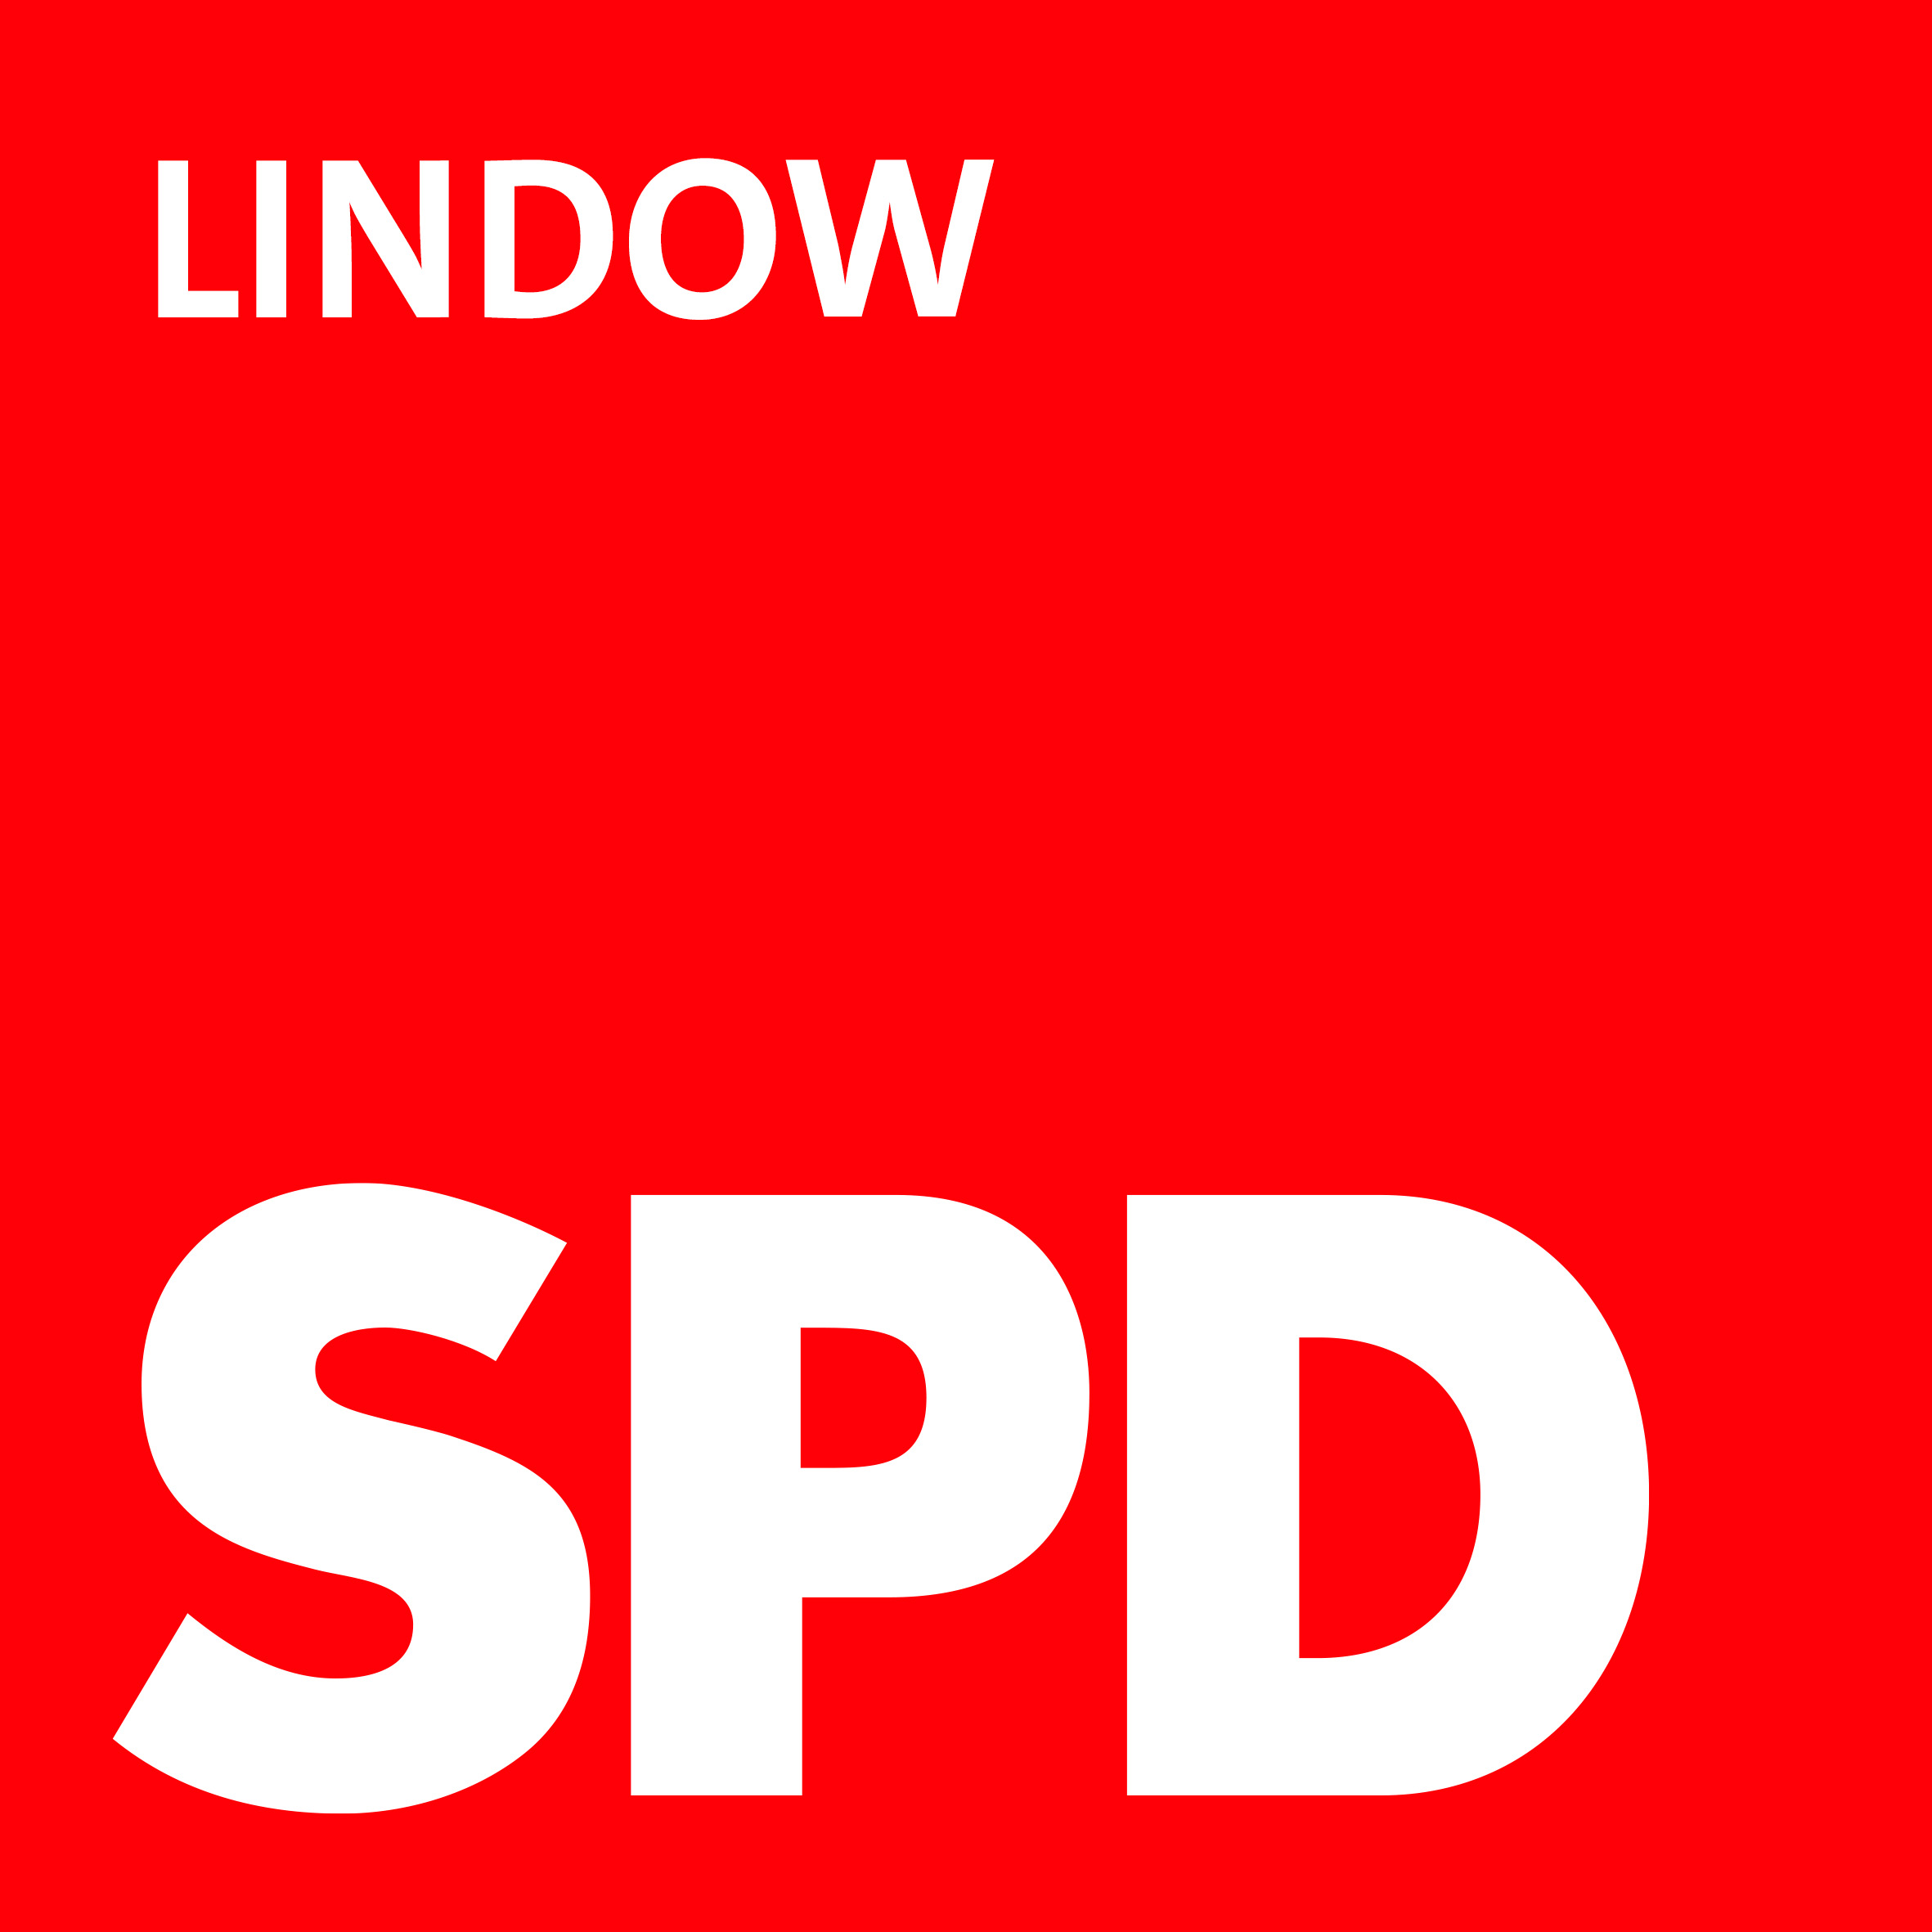 SPD Lindow